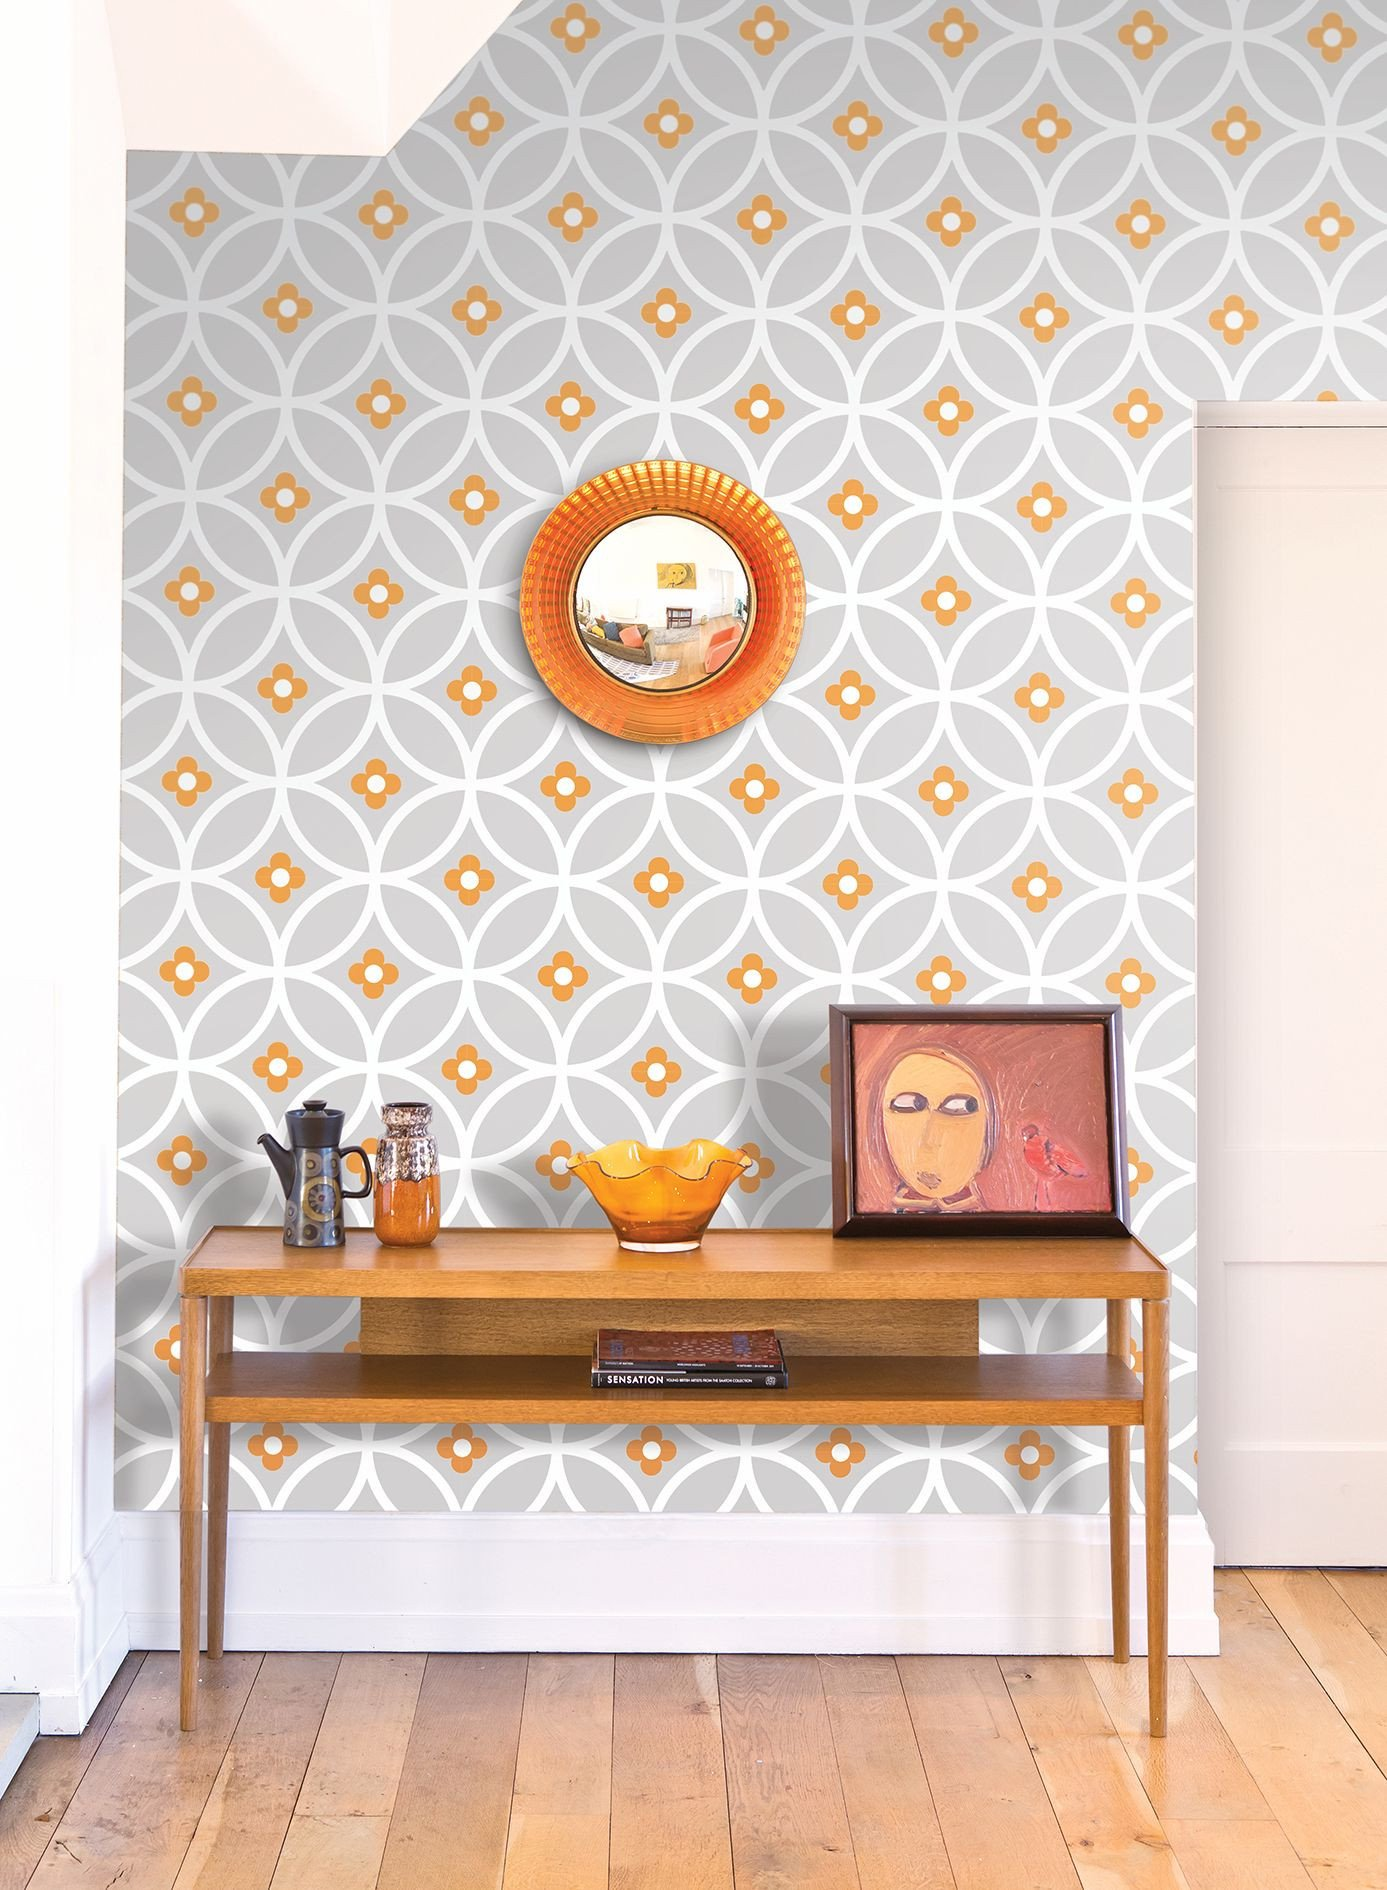 Wallpaper Borders for Bedroom Unique 10 Mid Century Modern Wallpaper Ideas that You Will Love